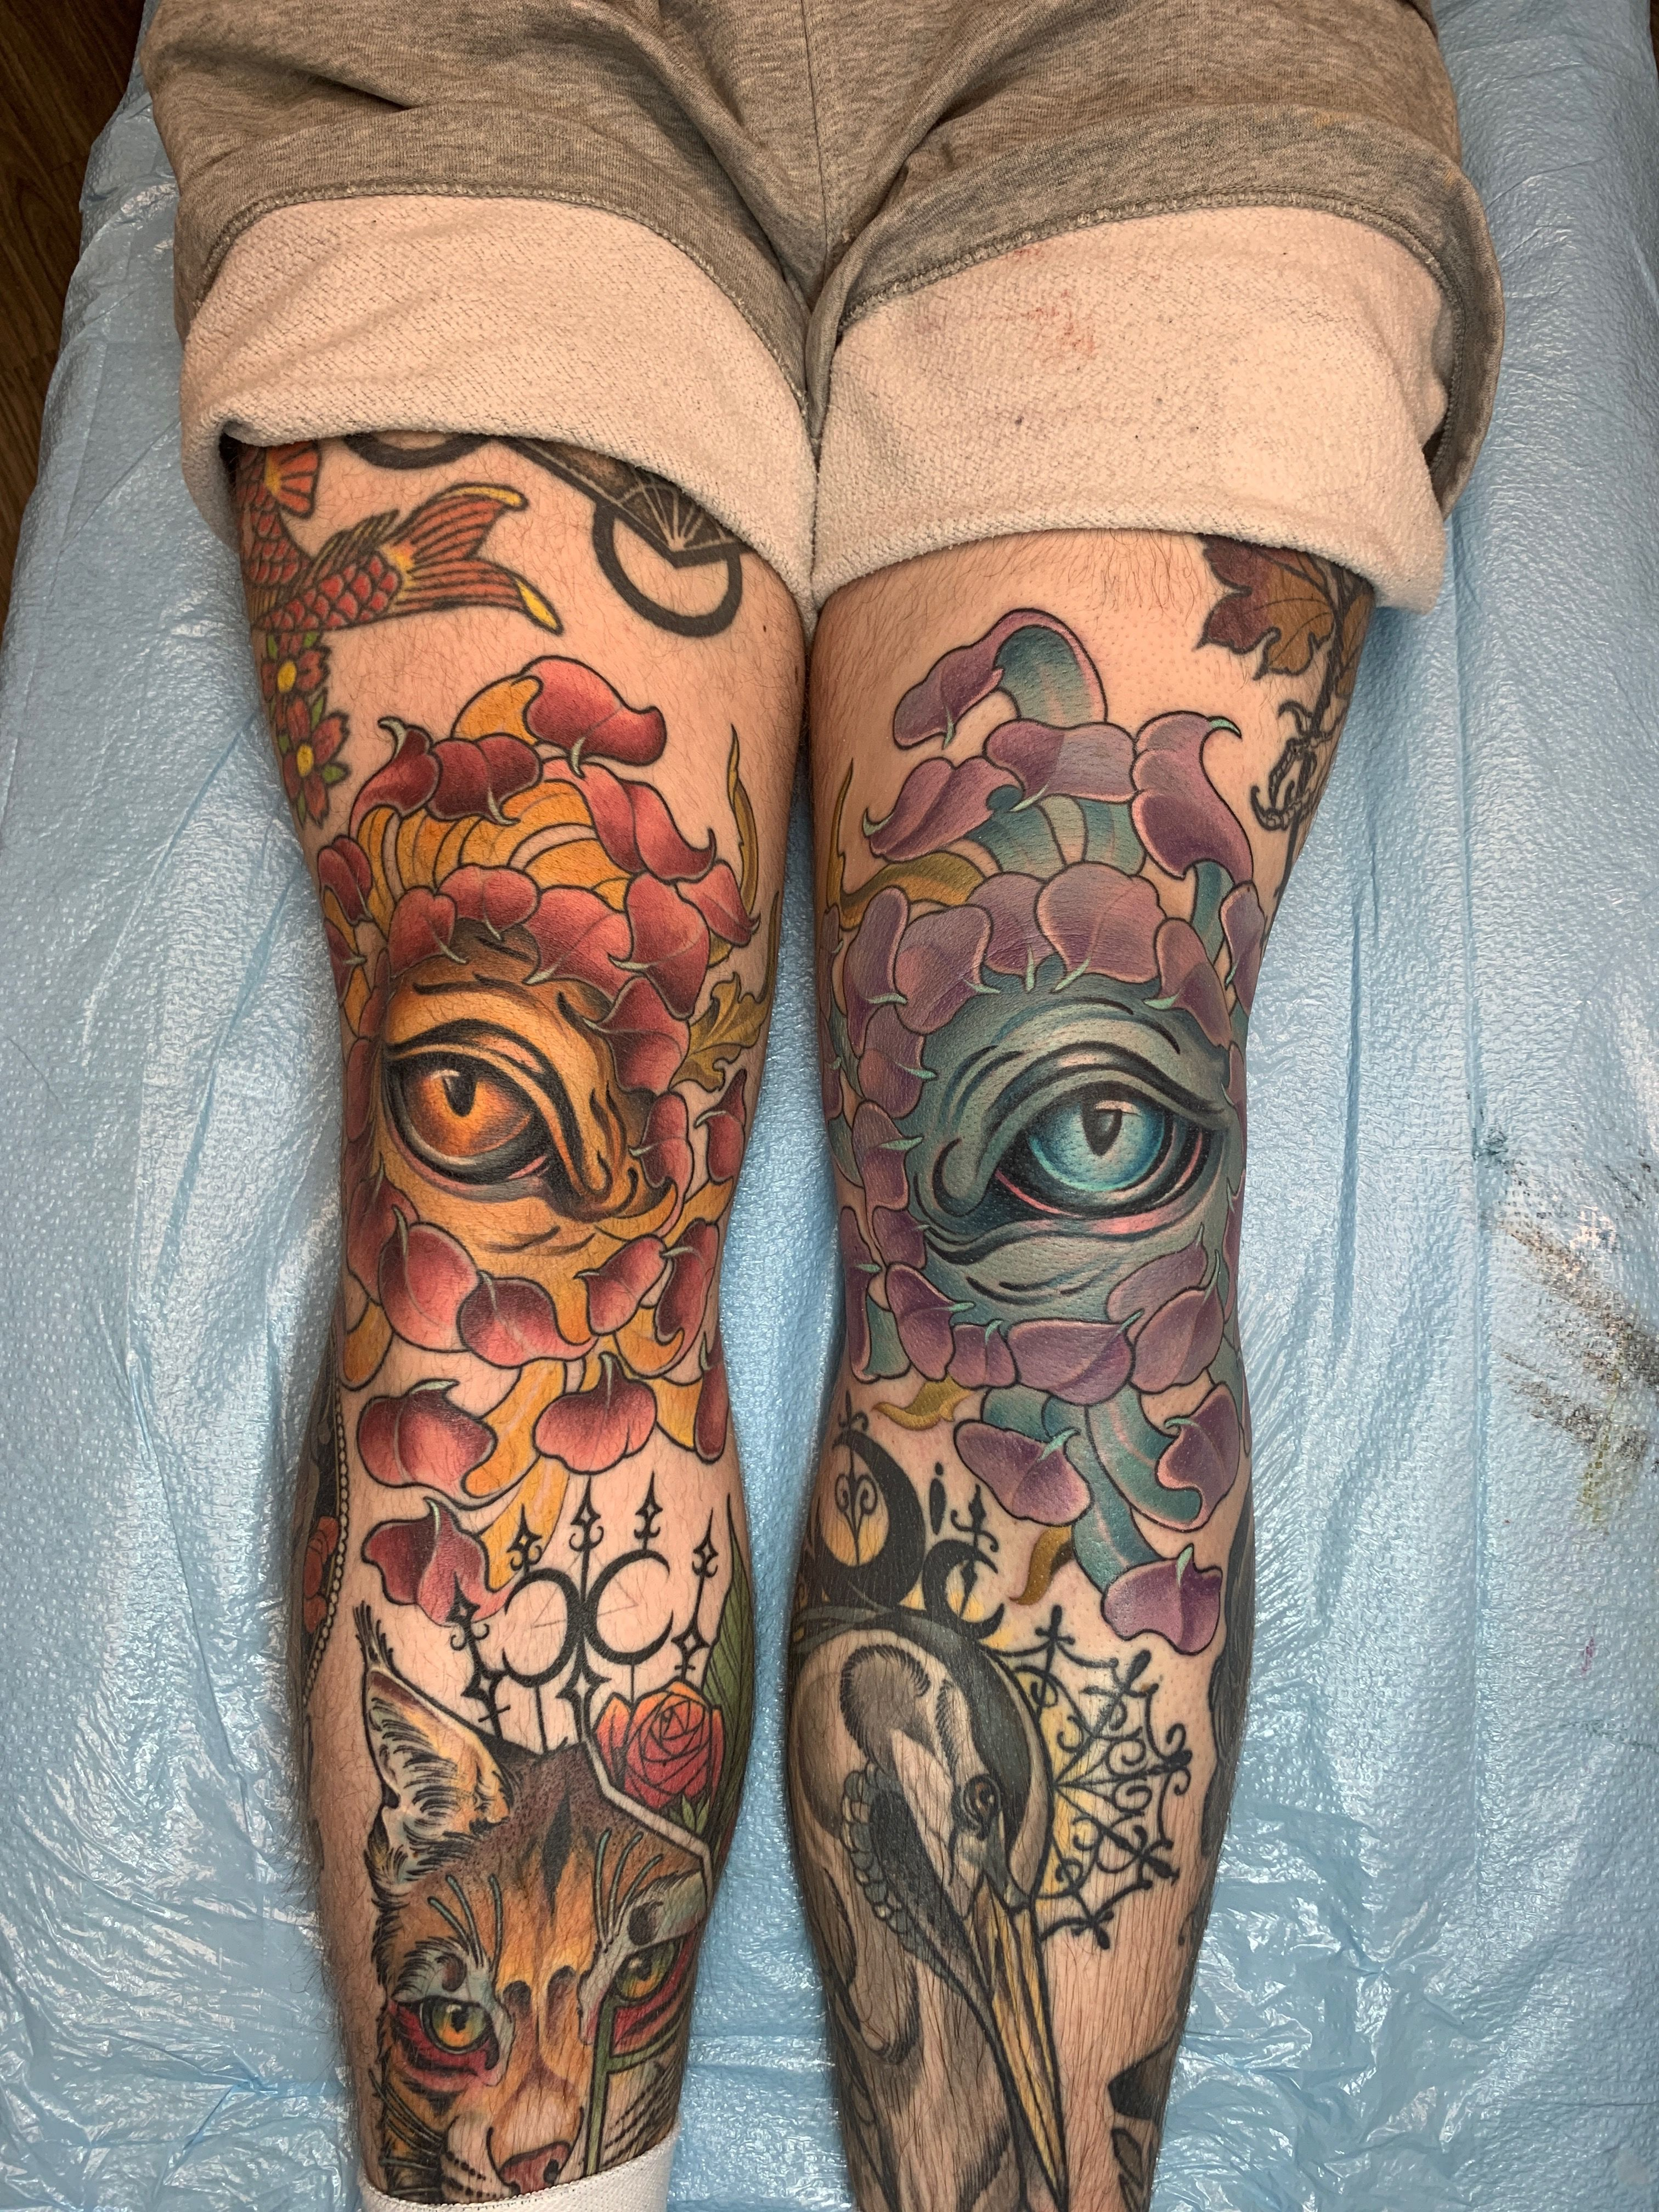 Meliis Eye Of Black Sage Studio Working On Miloalfring Knees Follow Blacksagestudio For All Your Tattoo And Tattoo Remov Tattoos Art Tattoo Life Tattoos